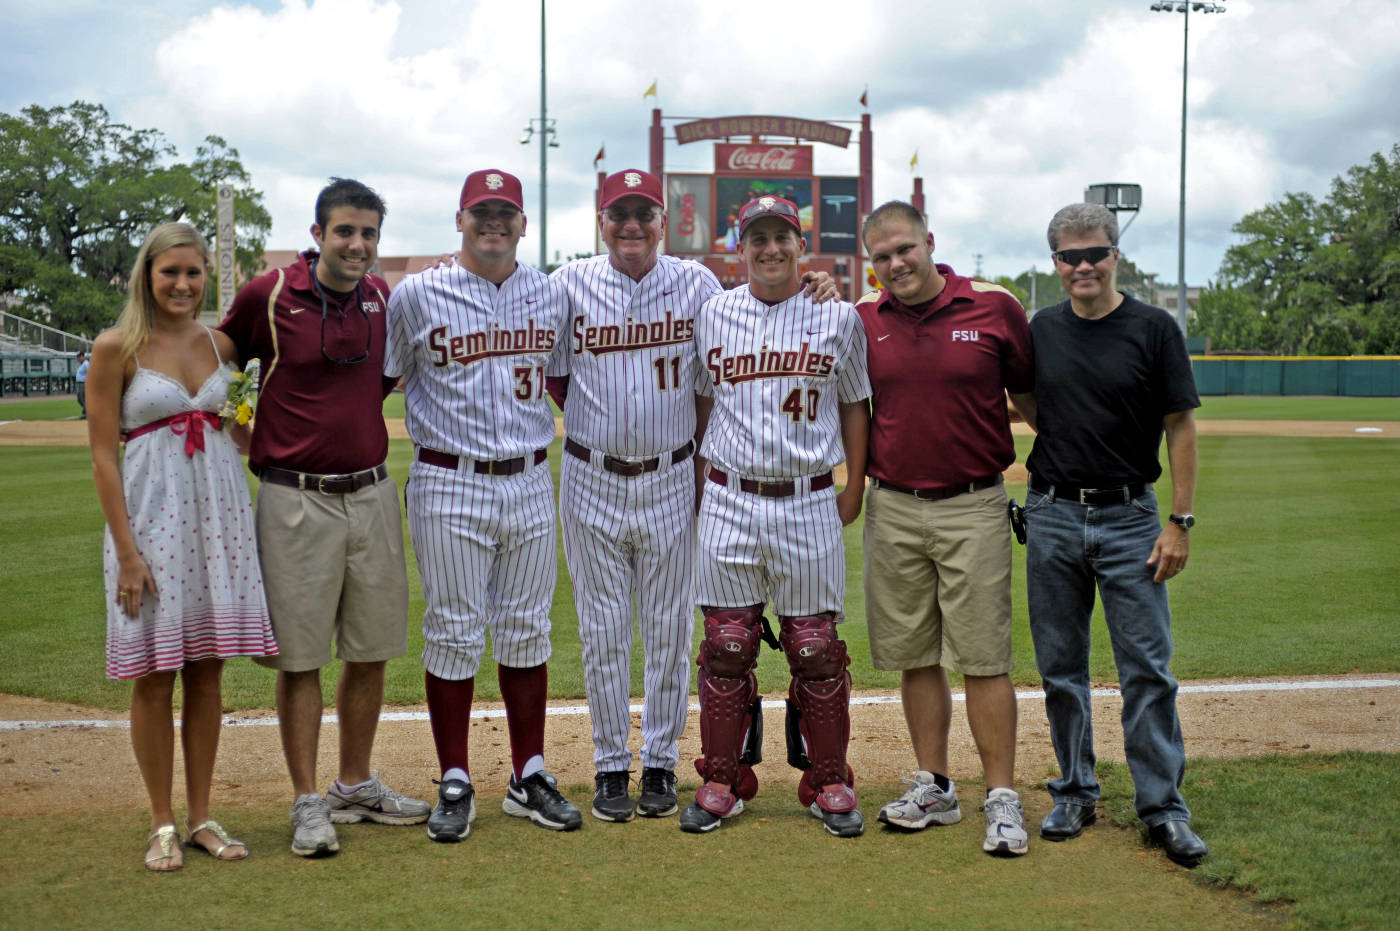 The 2009 Seminole Senior Class - Support Staff